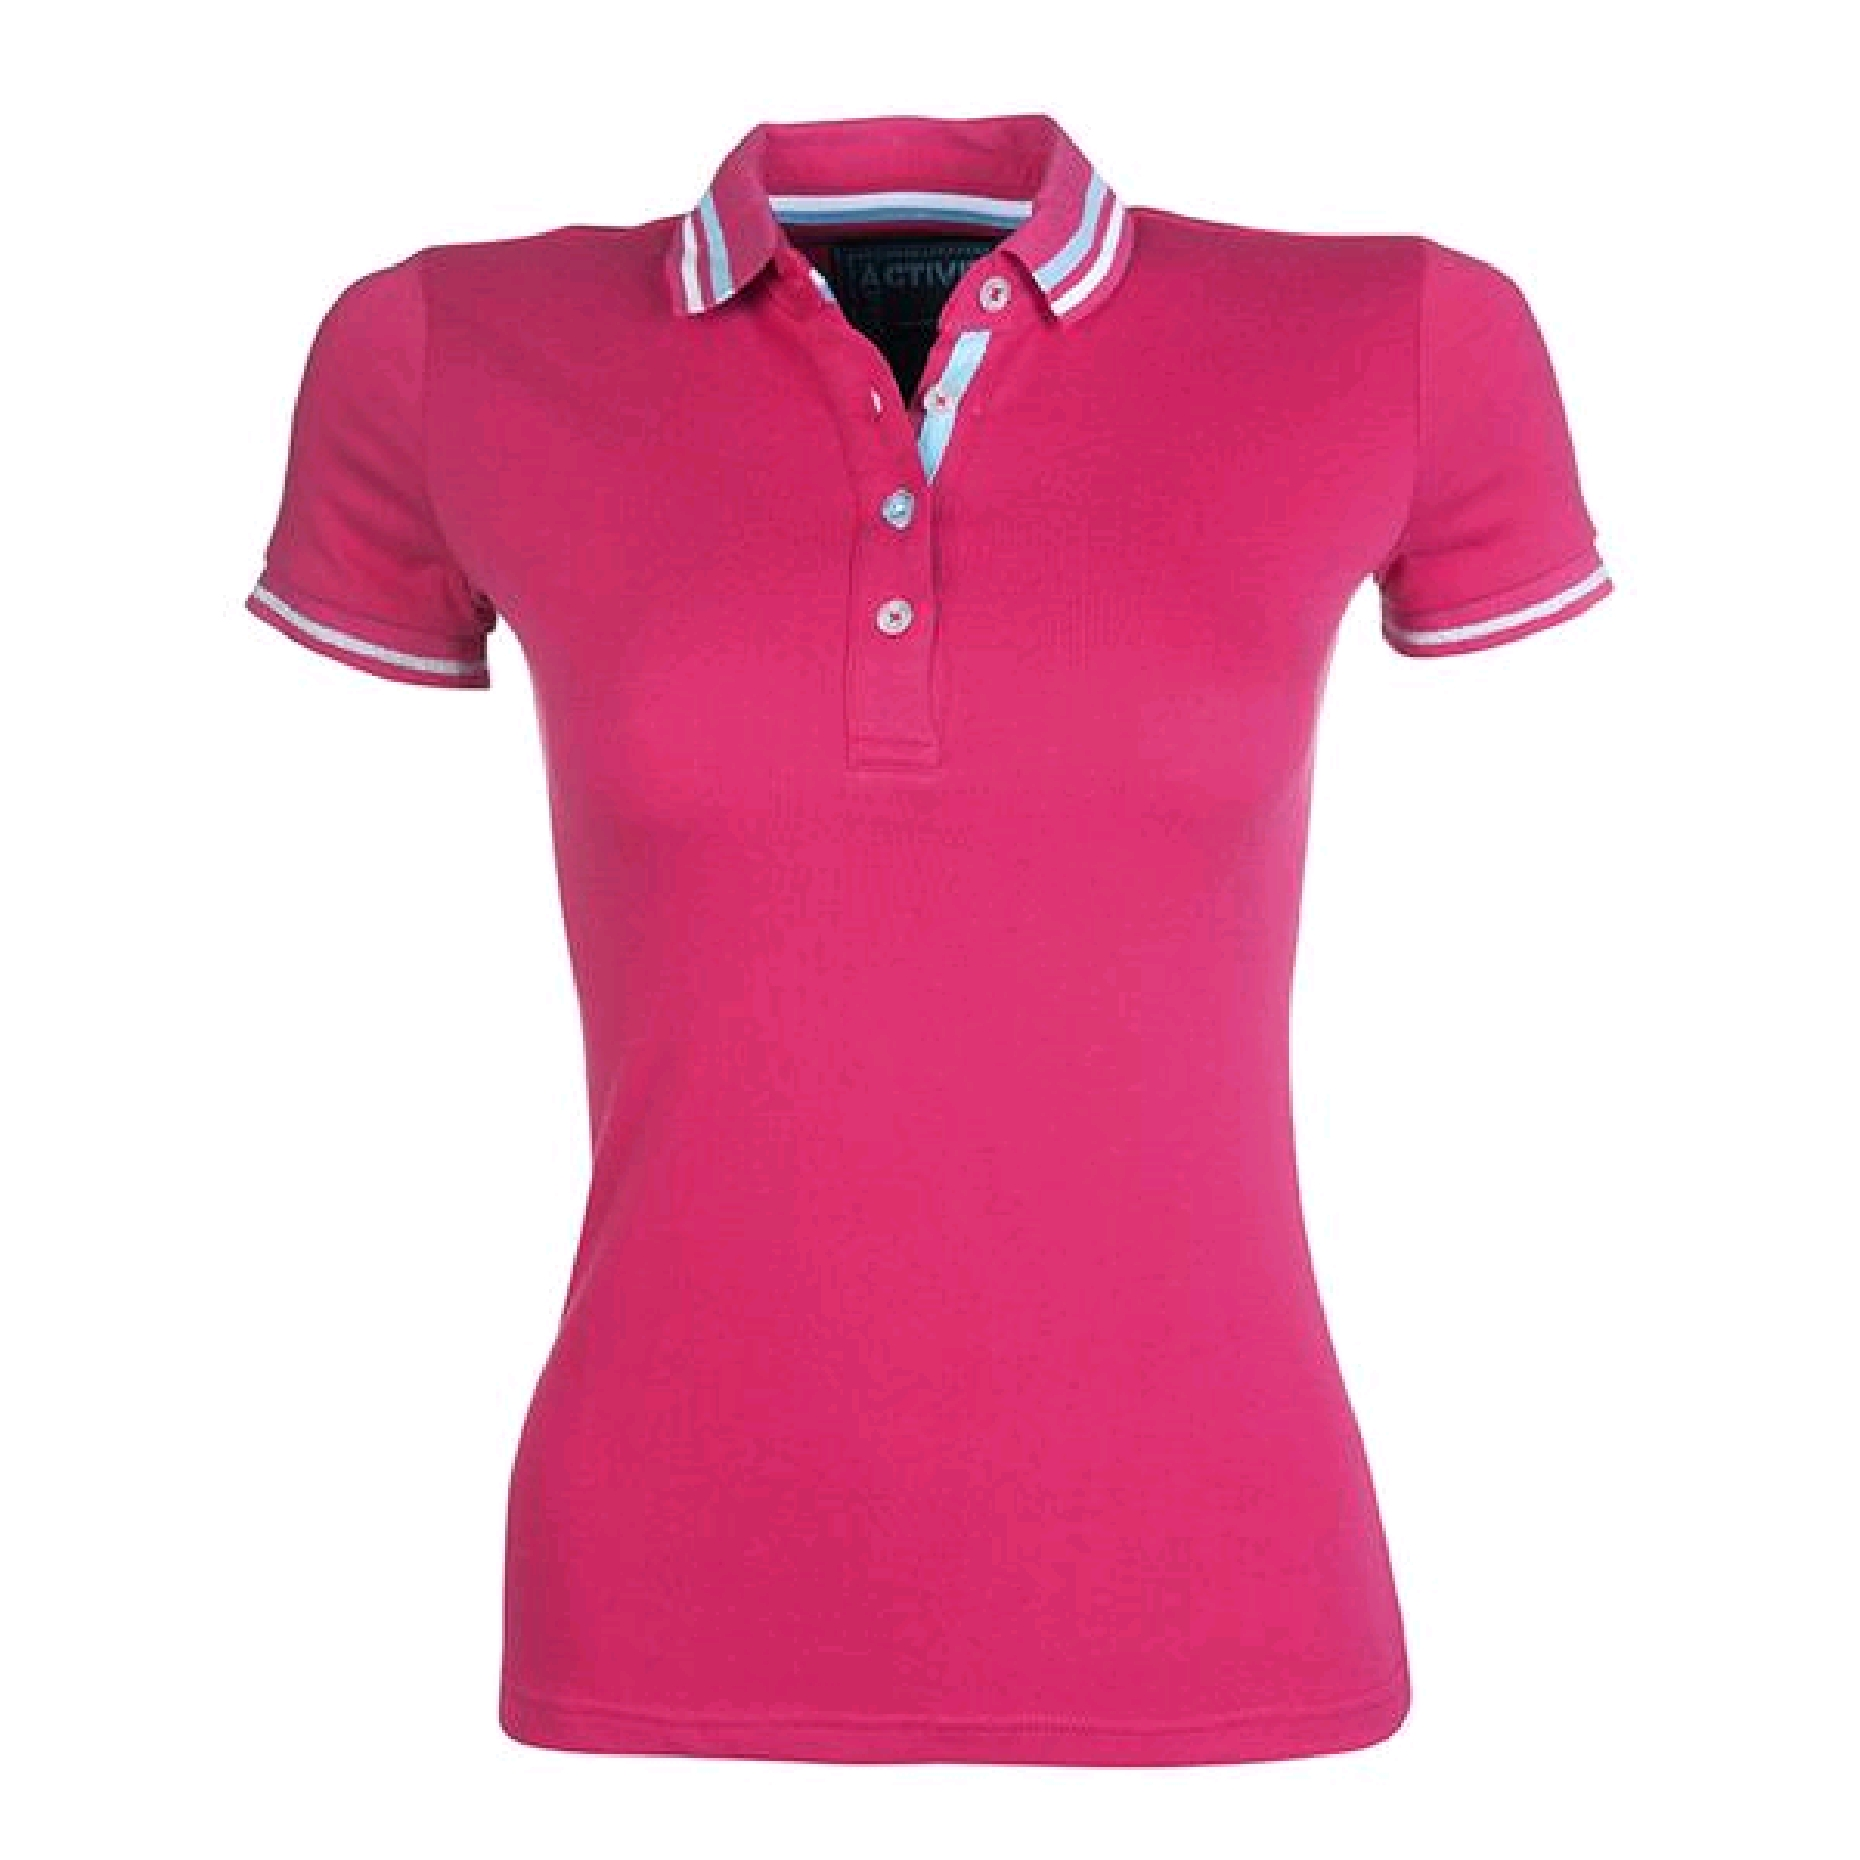 HKM Pro Team Pink/Blue T-Shirt